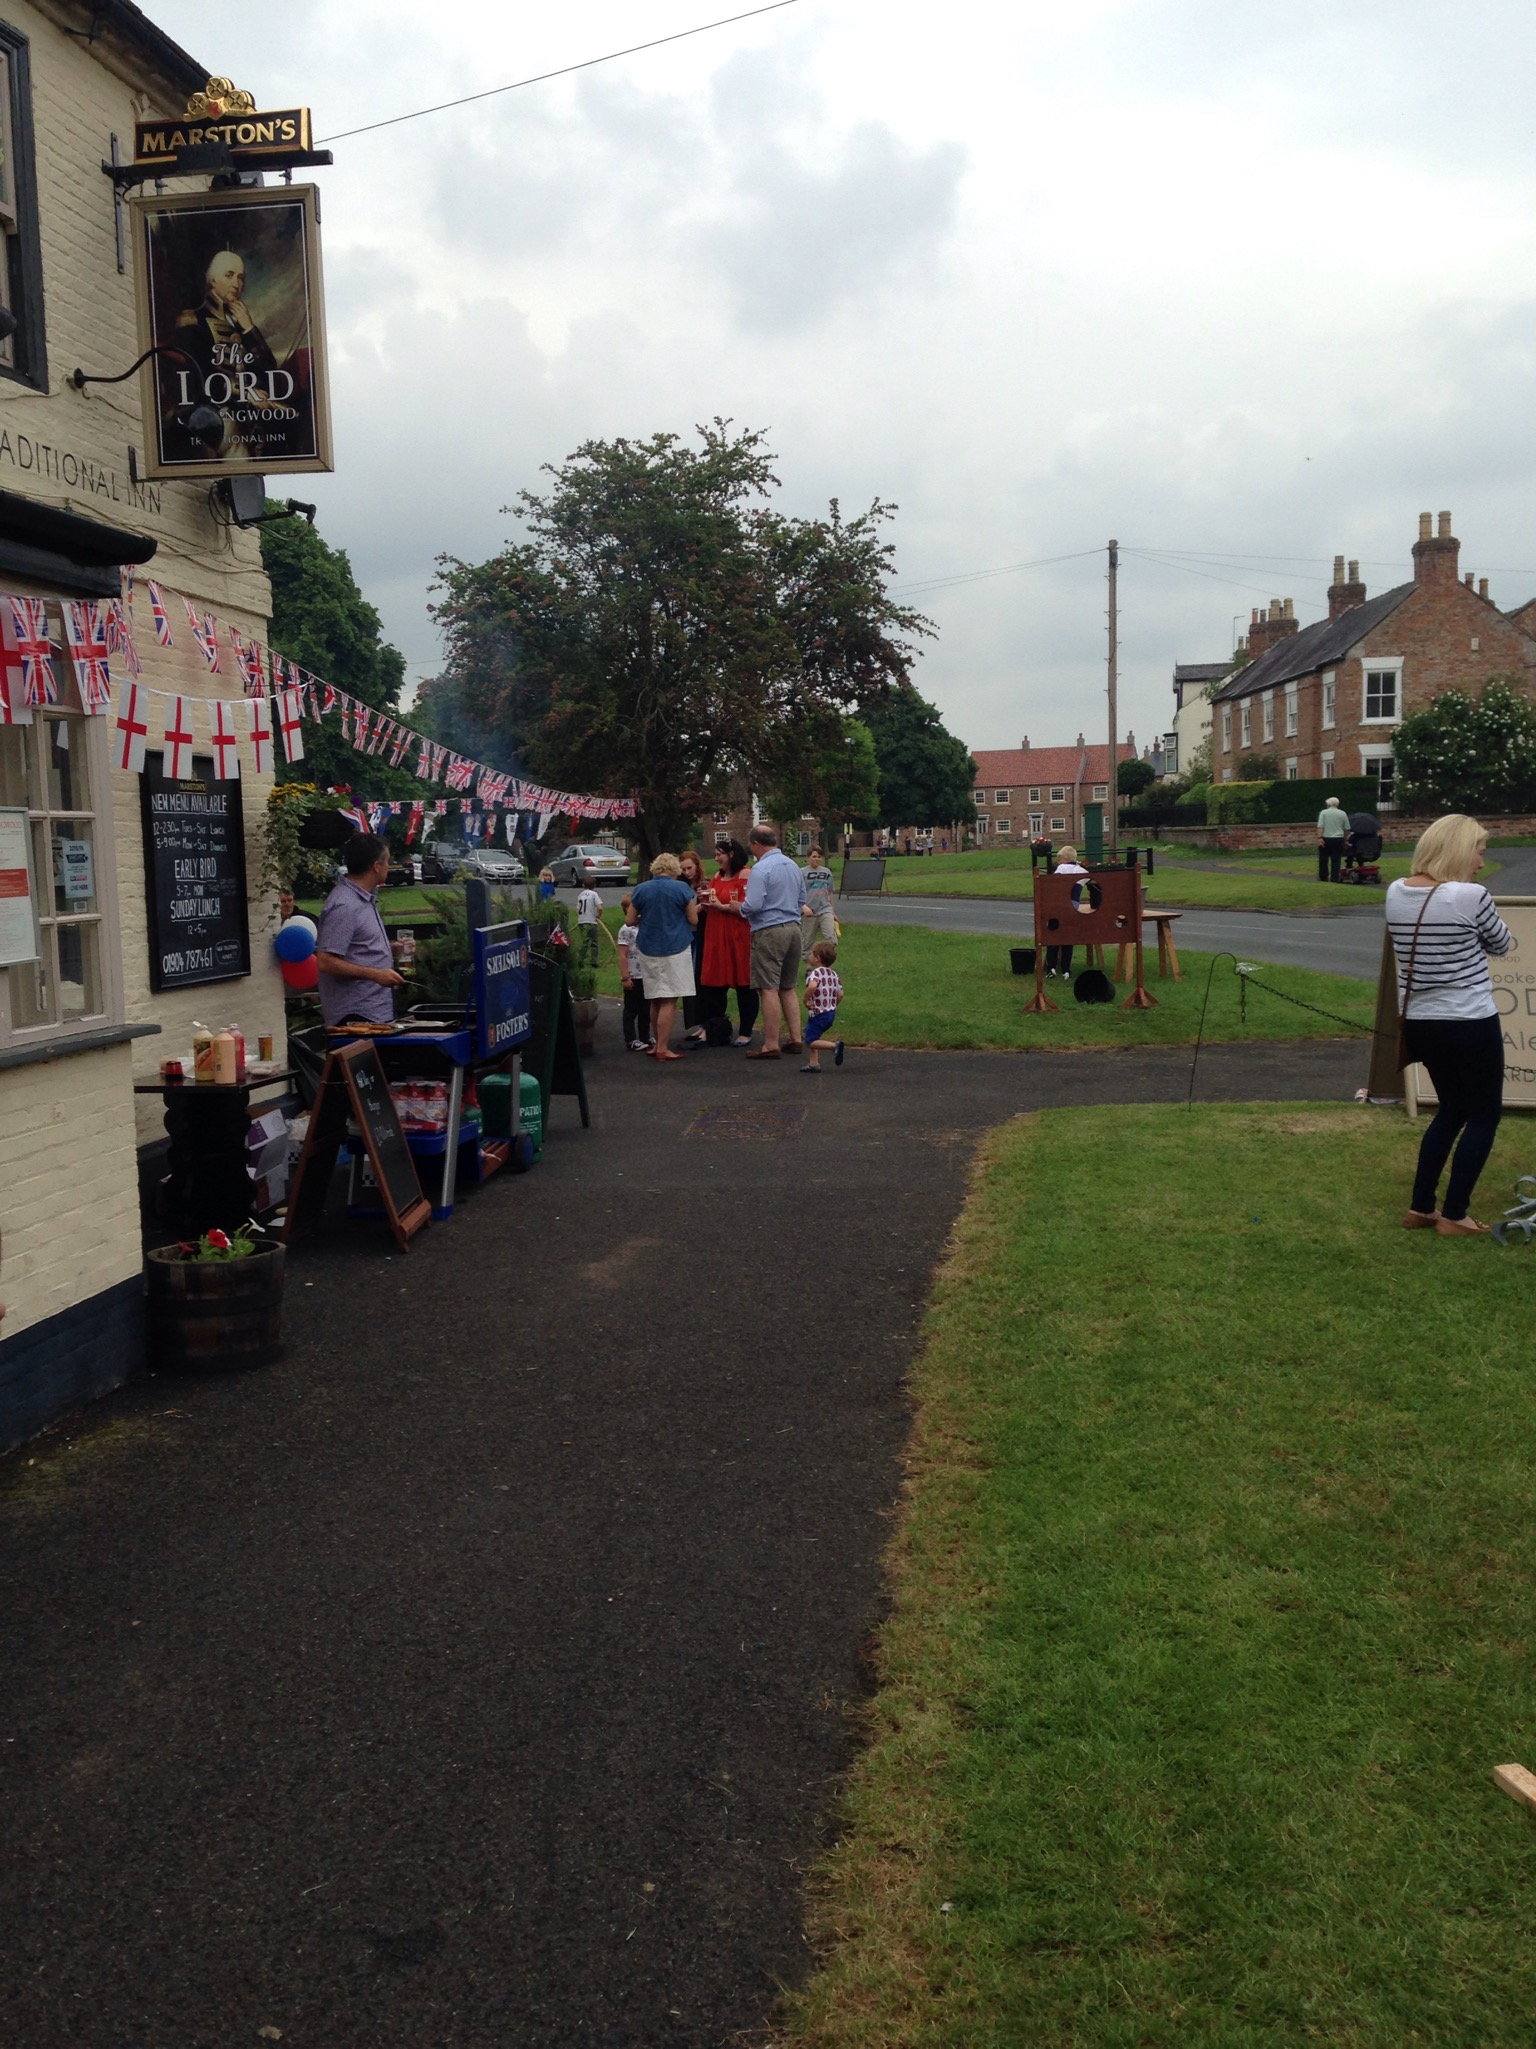 The Queens birthday celebrations street party